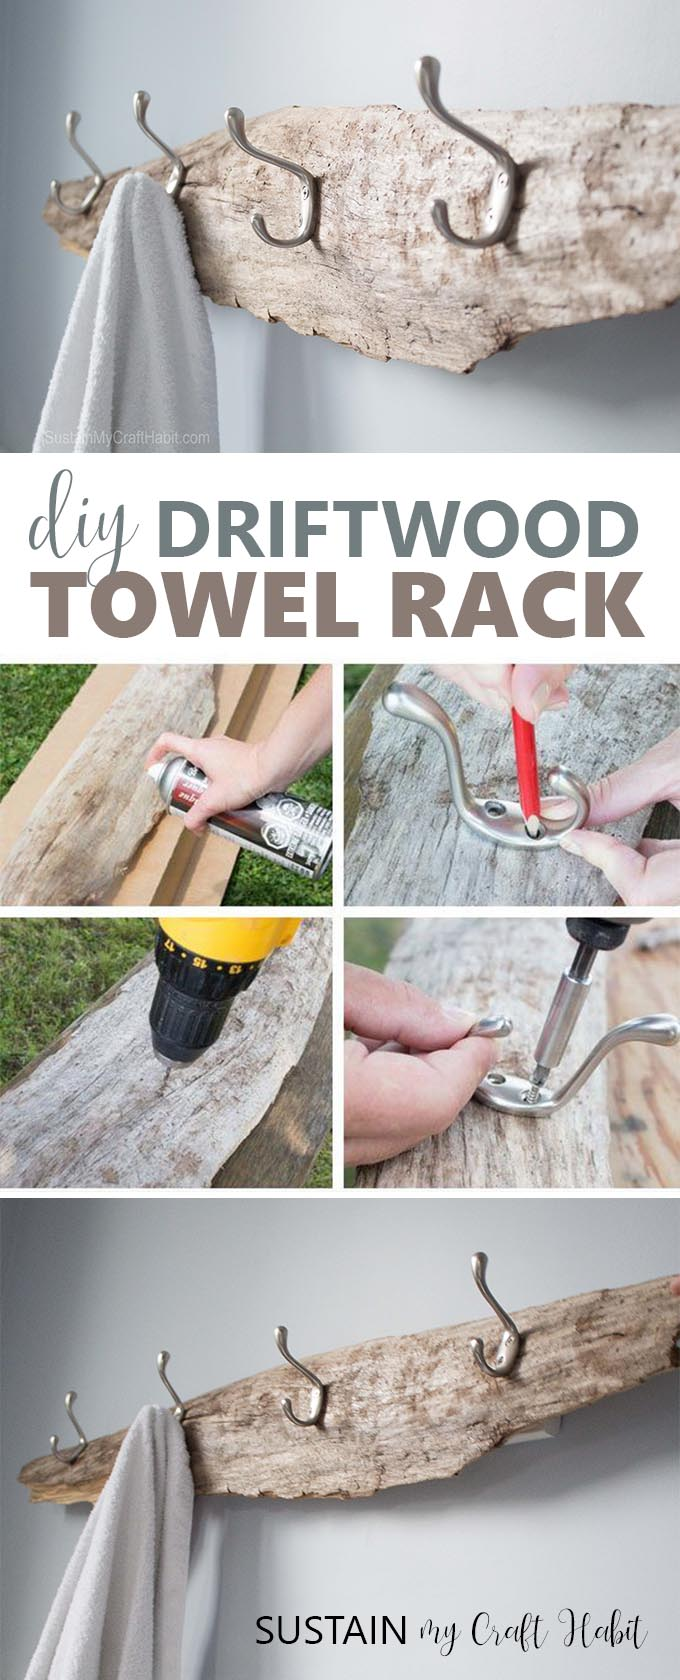 Rustic DIY towel rack made with driftwood